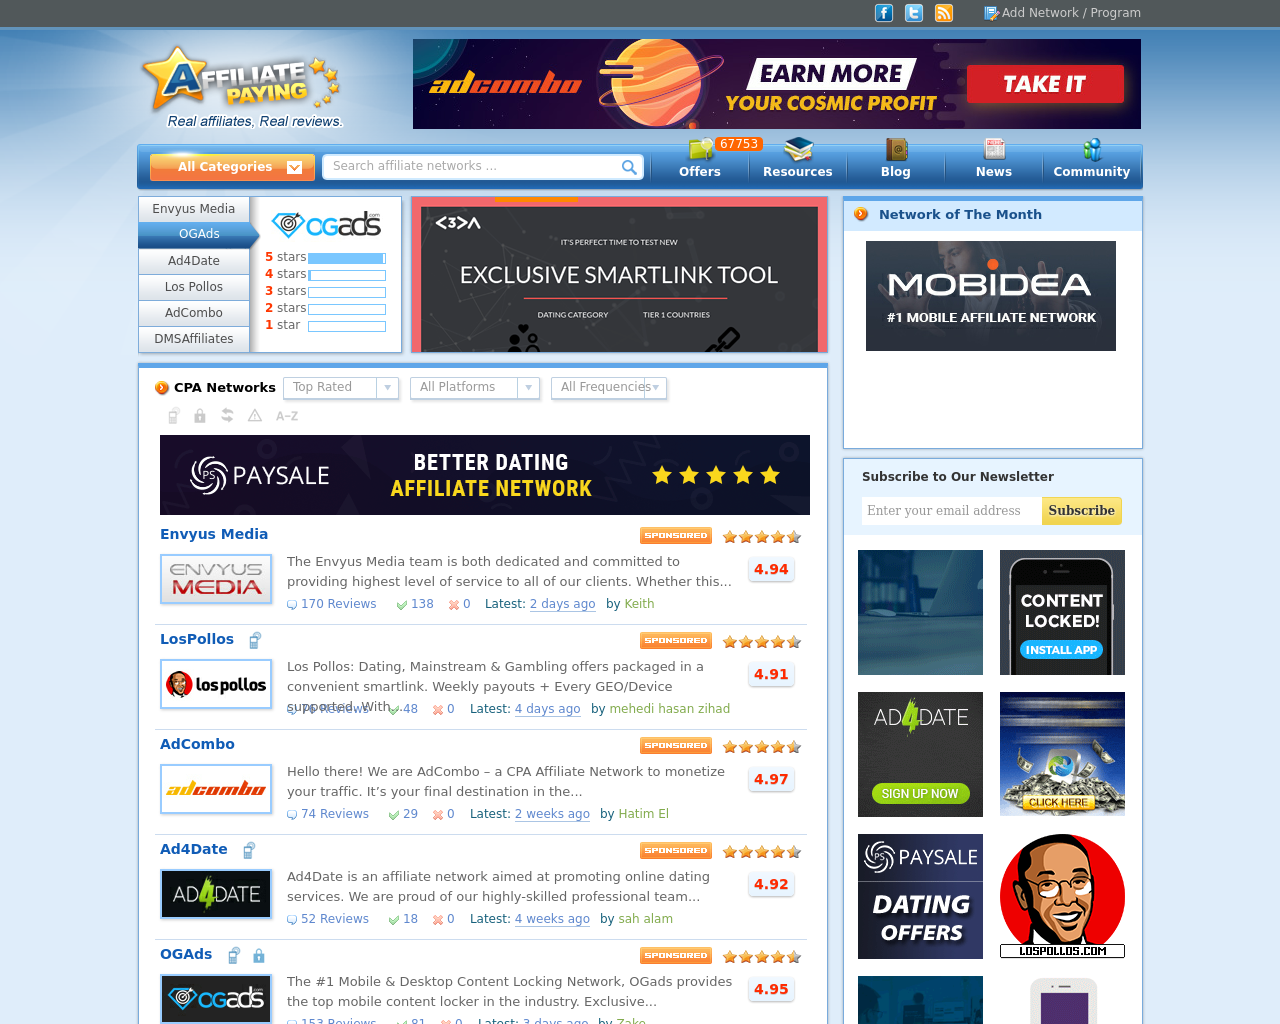 Affpaying com Advertising Mediakits, Reviews, Pricing, Traffic, Rate